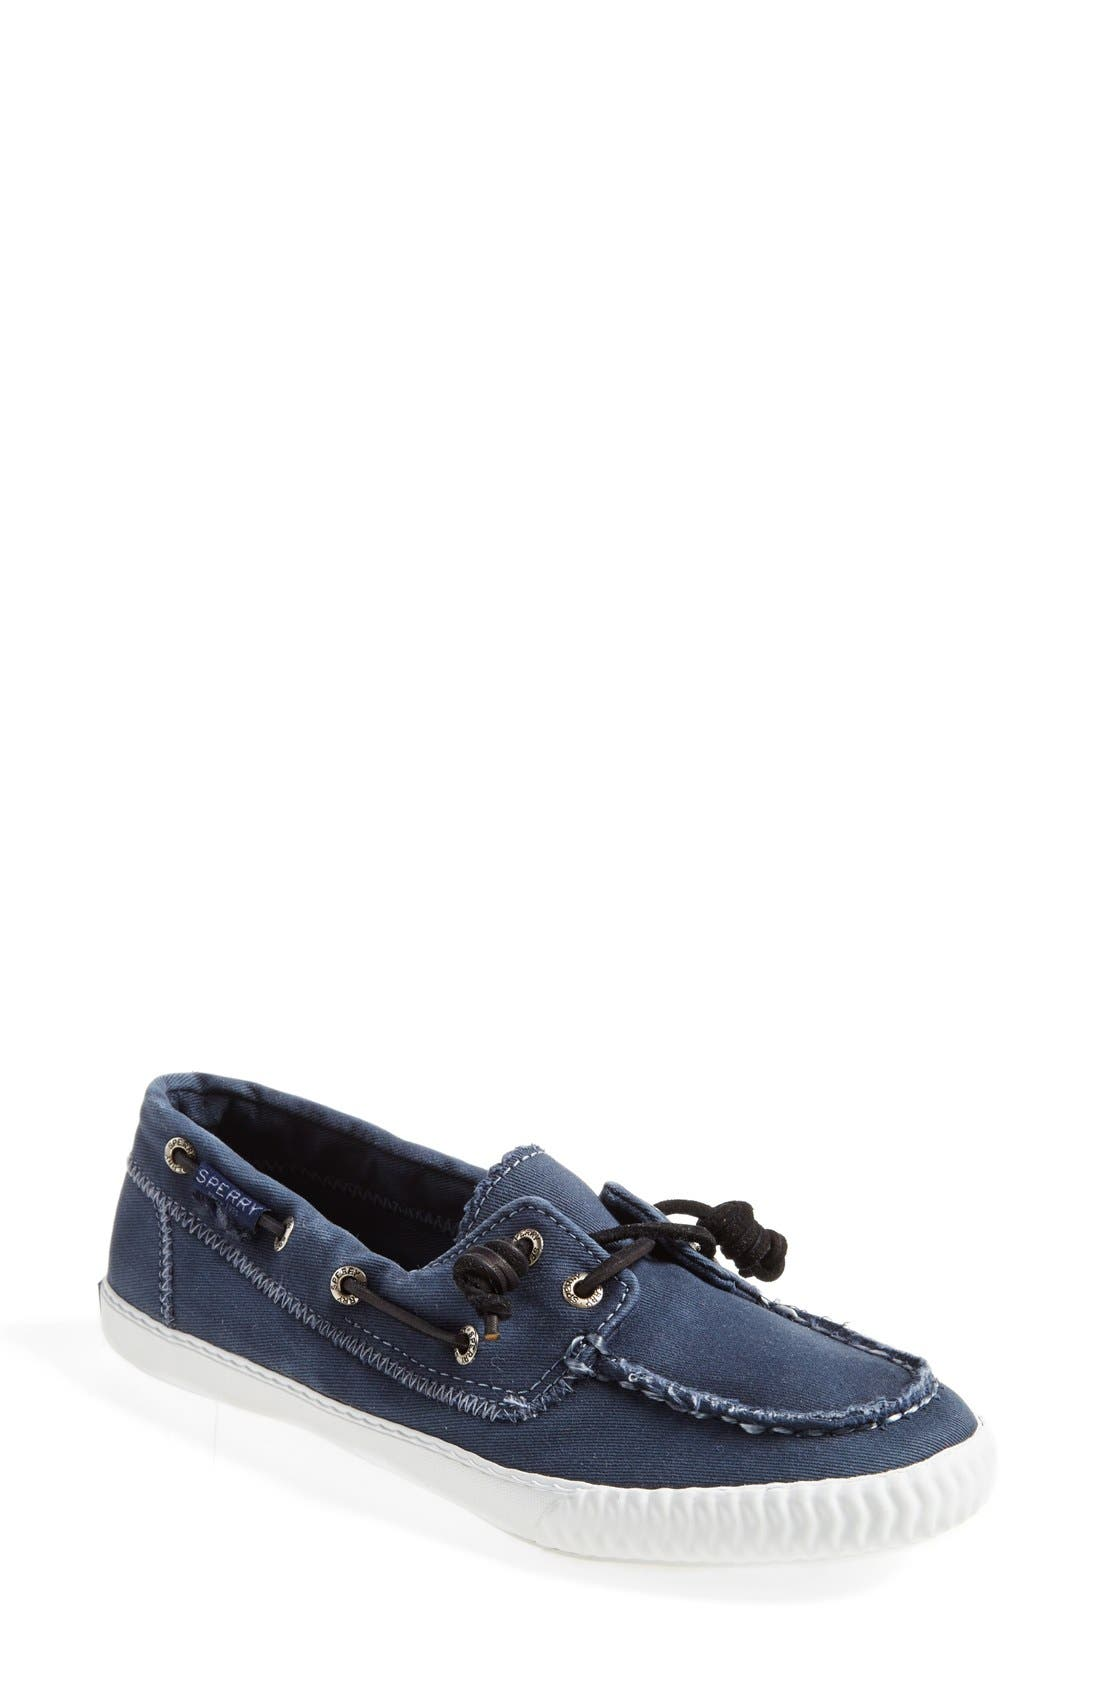 Paul Sperry 'Sayel Away' Sneaker,                         Main,                         color, Navy